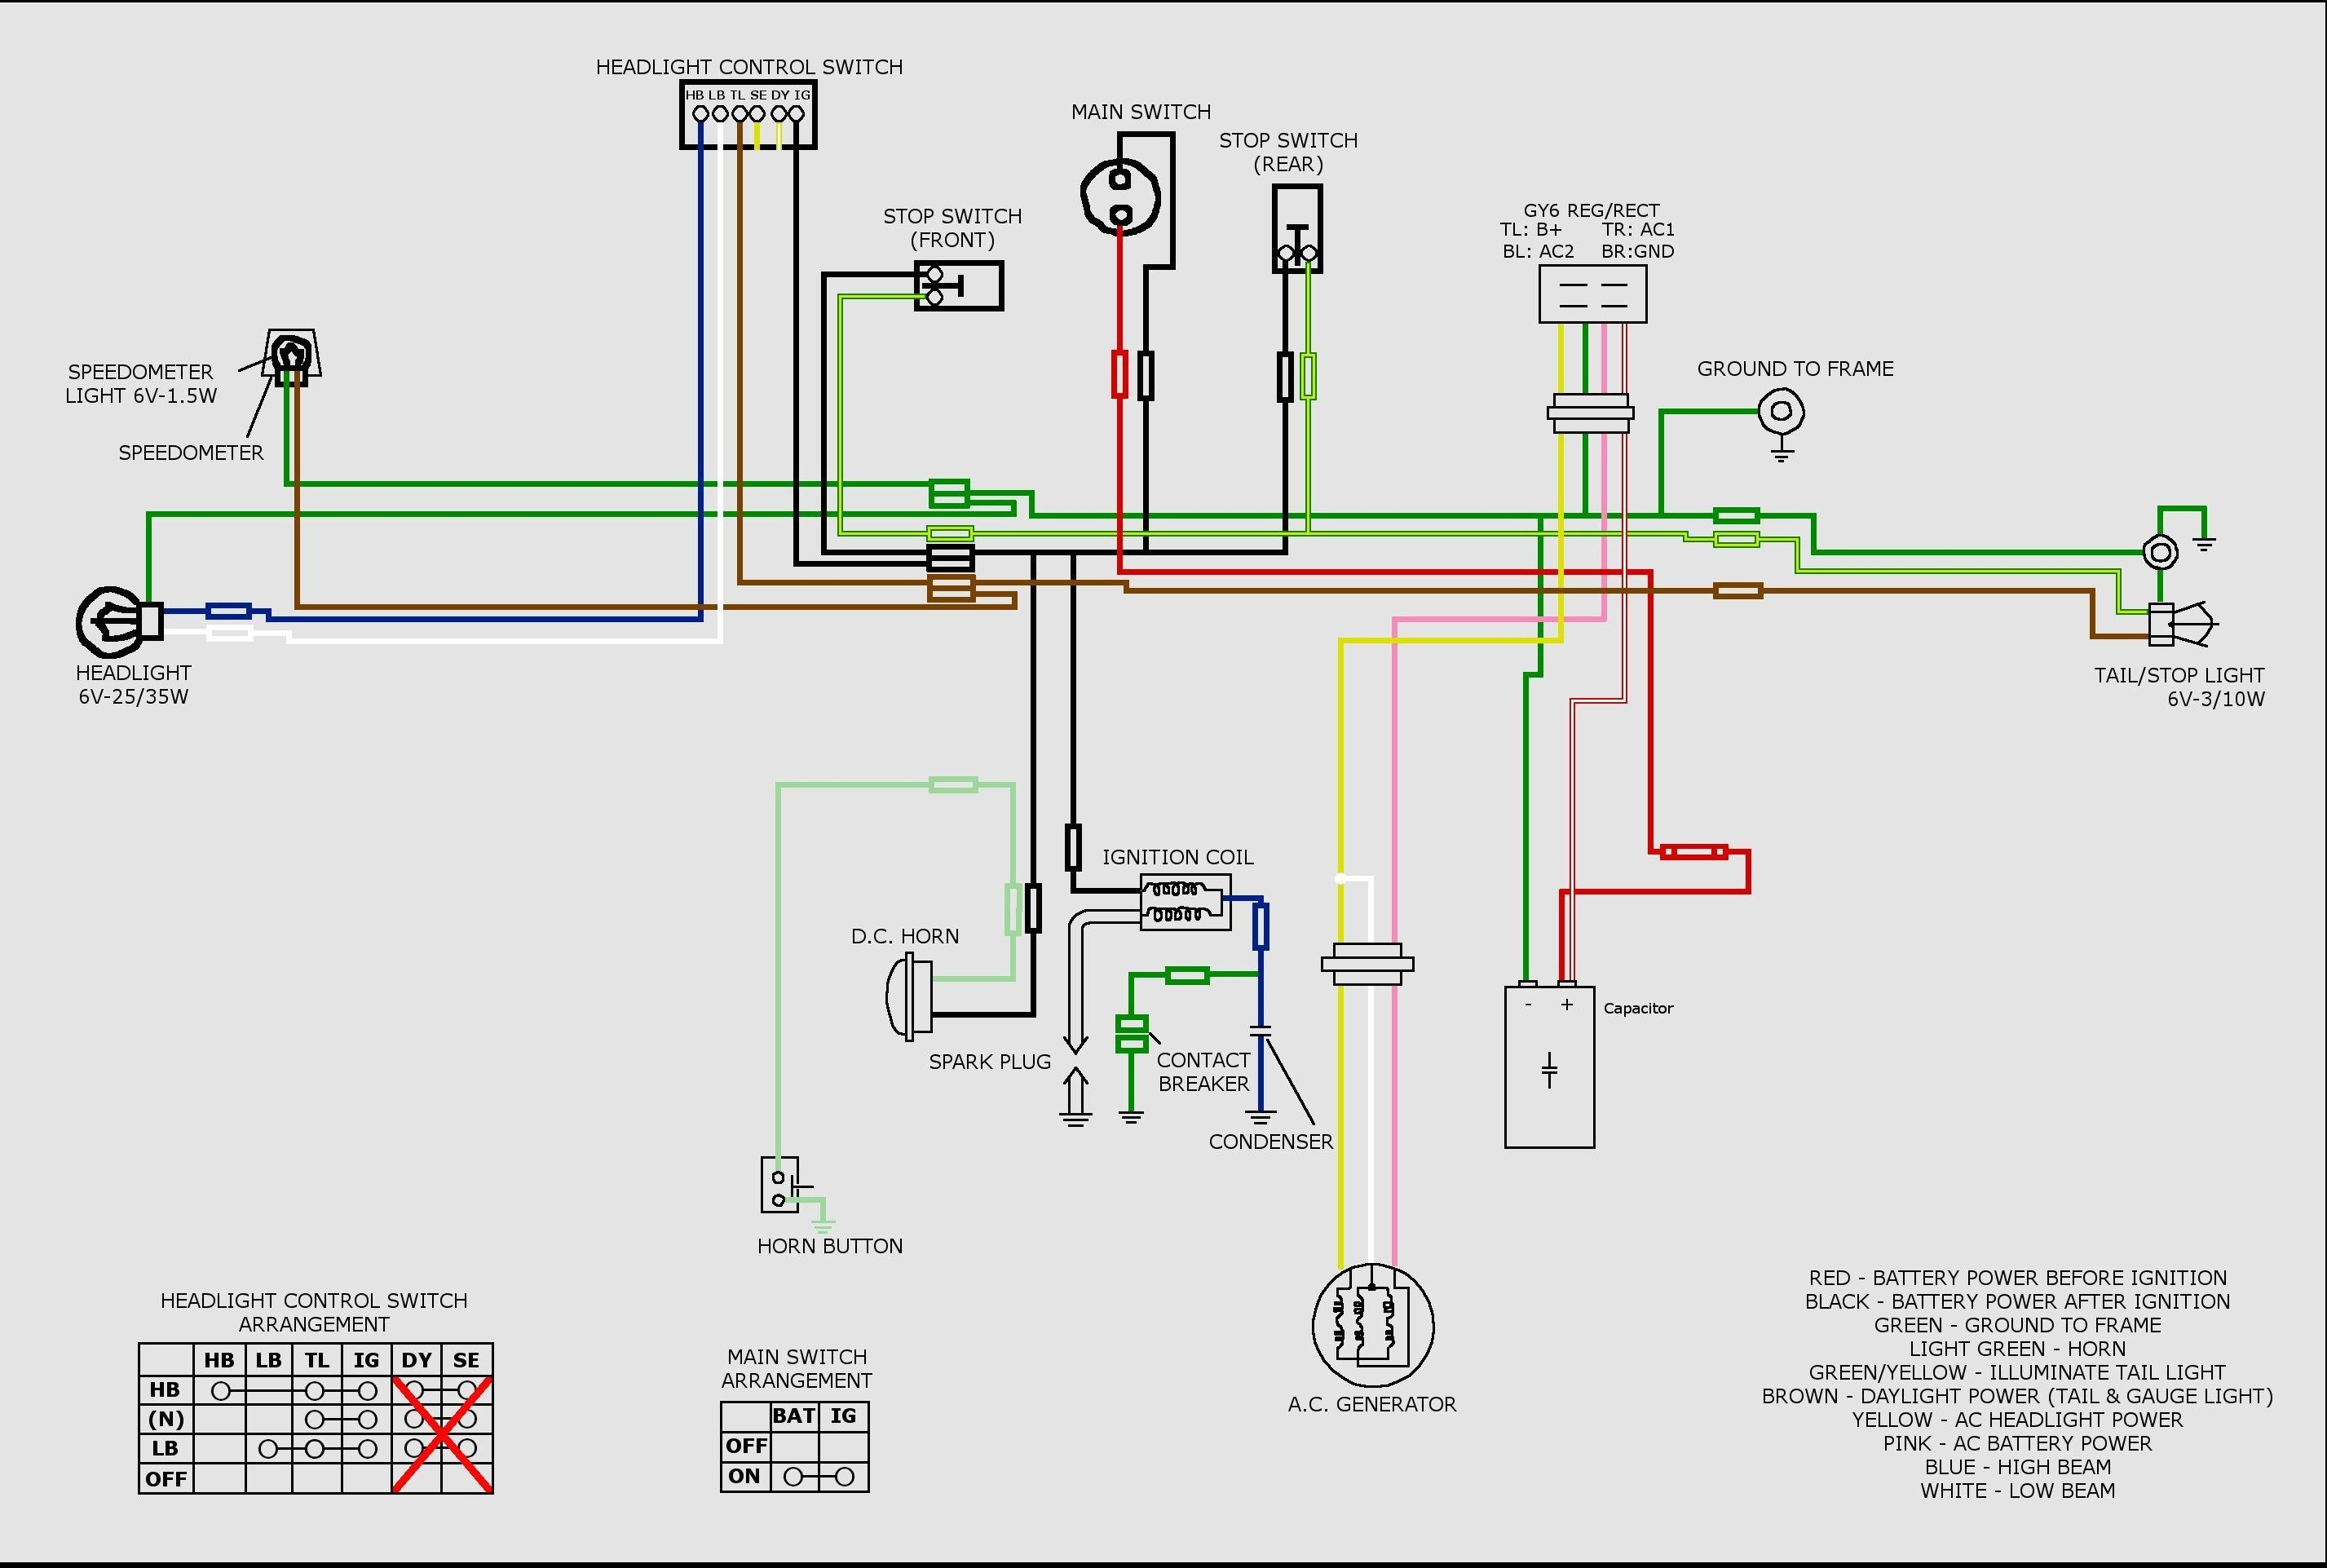 Chinese atv Wiring Schematic Gy6 Wiring Diagram Awesome 150cc Gy6 Wiring Diagram within Of Chinese atv Wiring Schematic